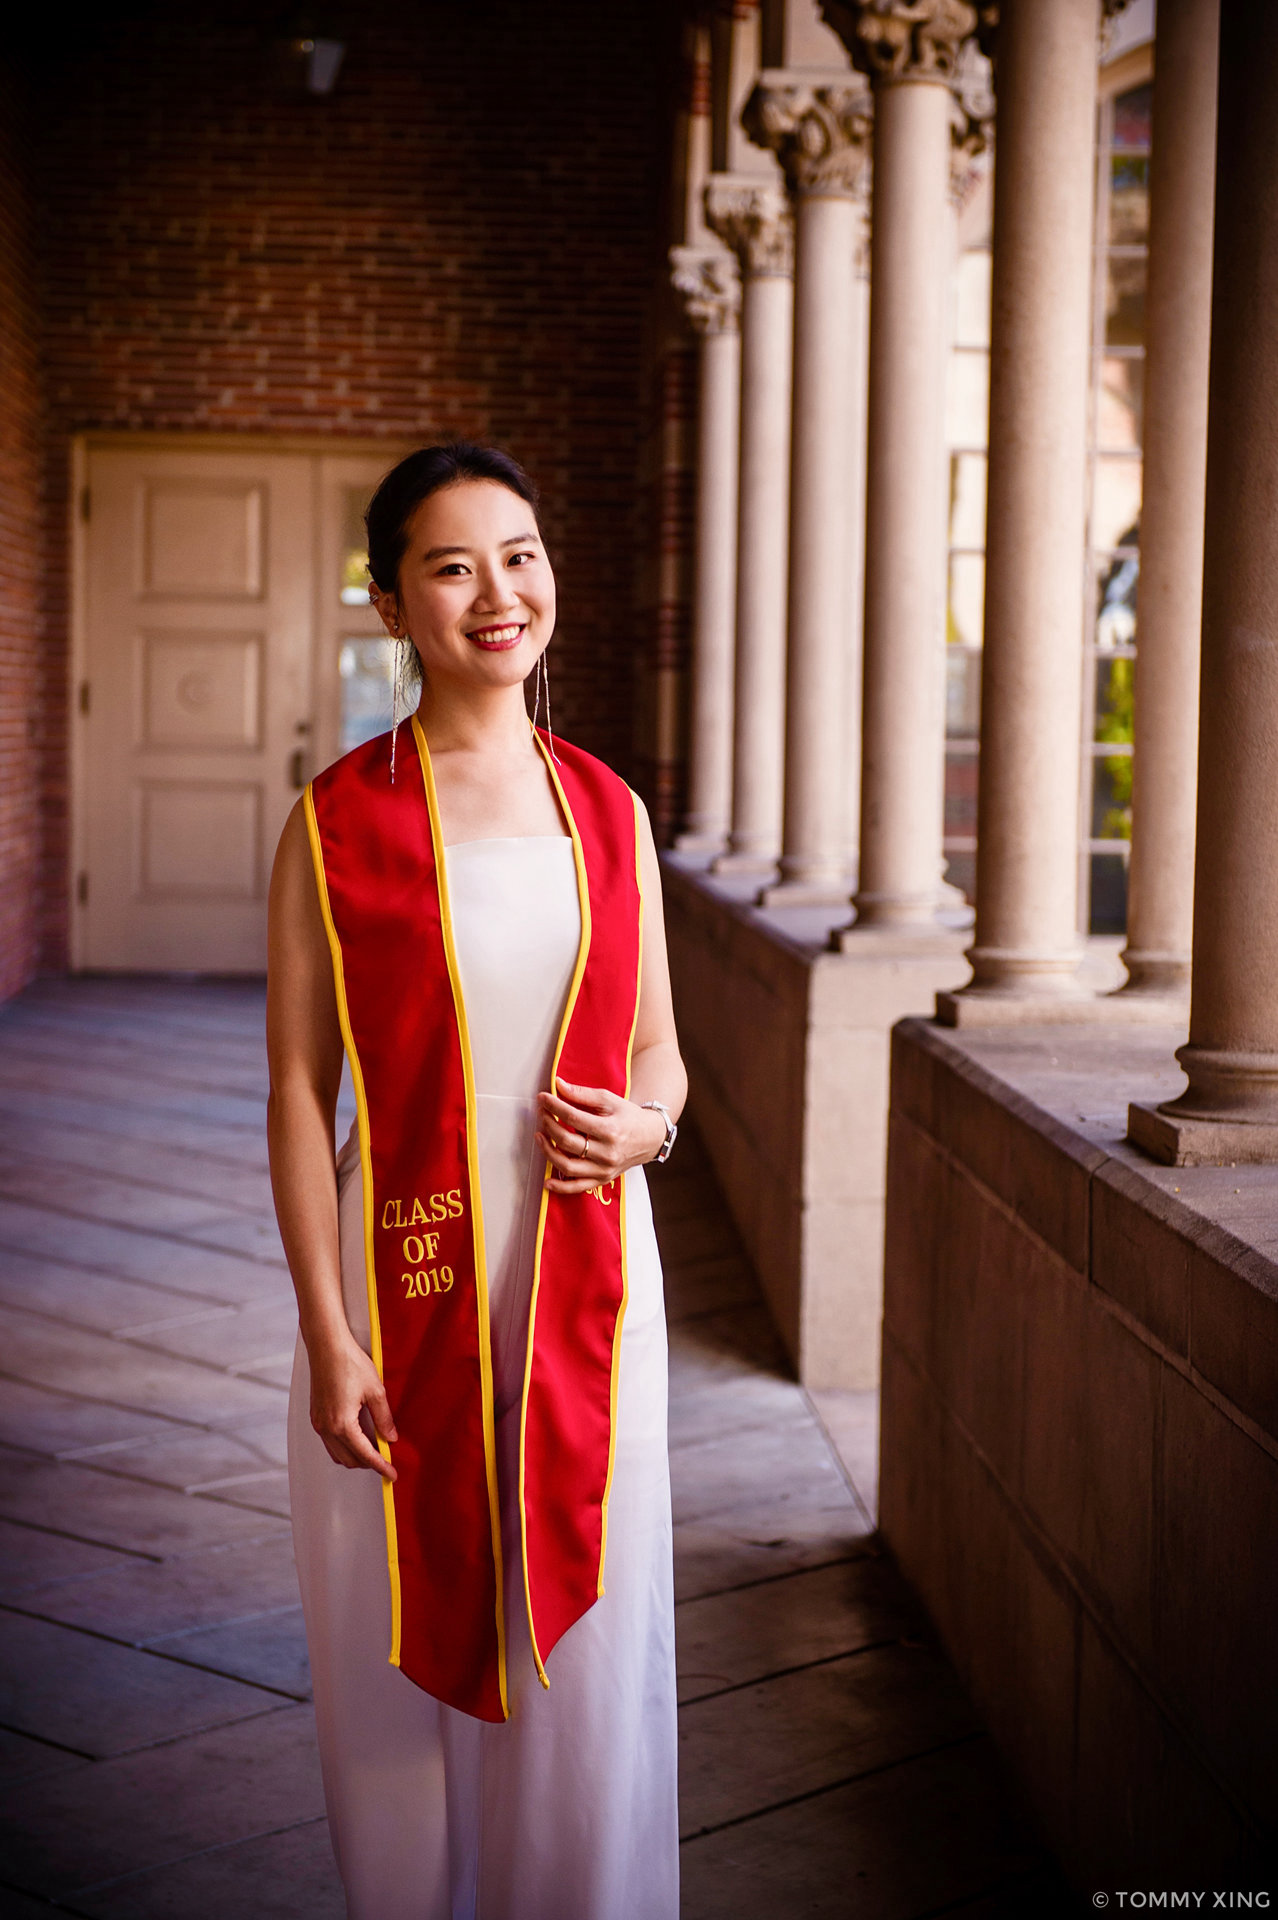 Graduation Pictures Los Angeles USC UCLA - Tommy Xing Photography 02.jpg